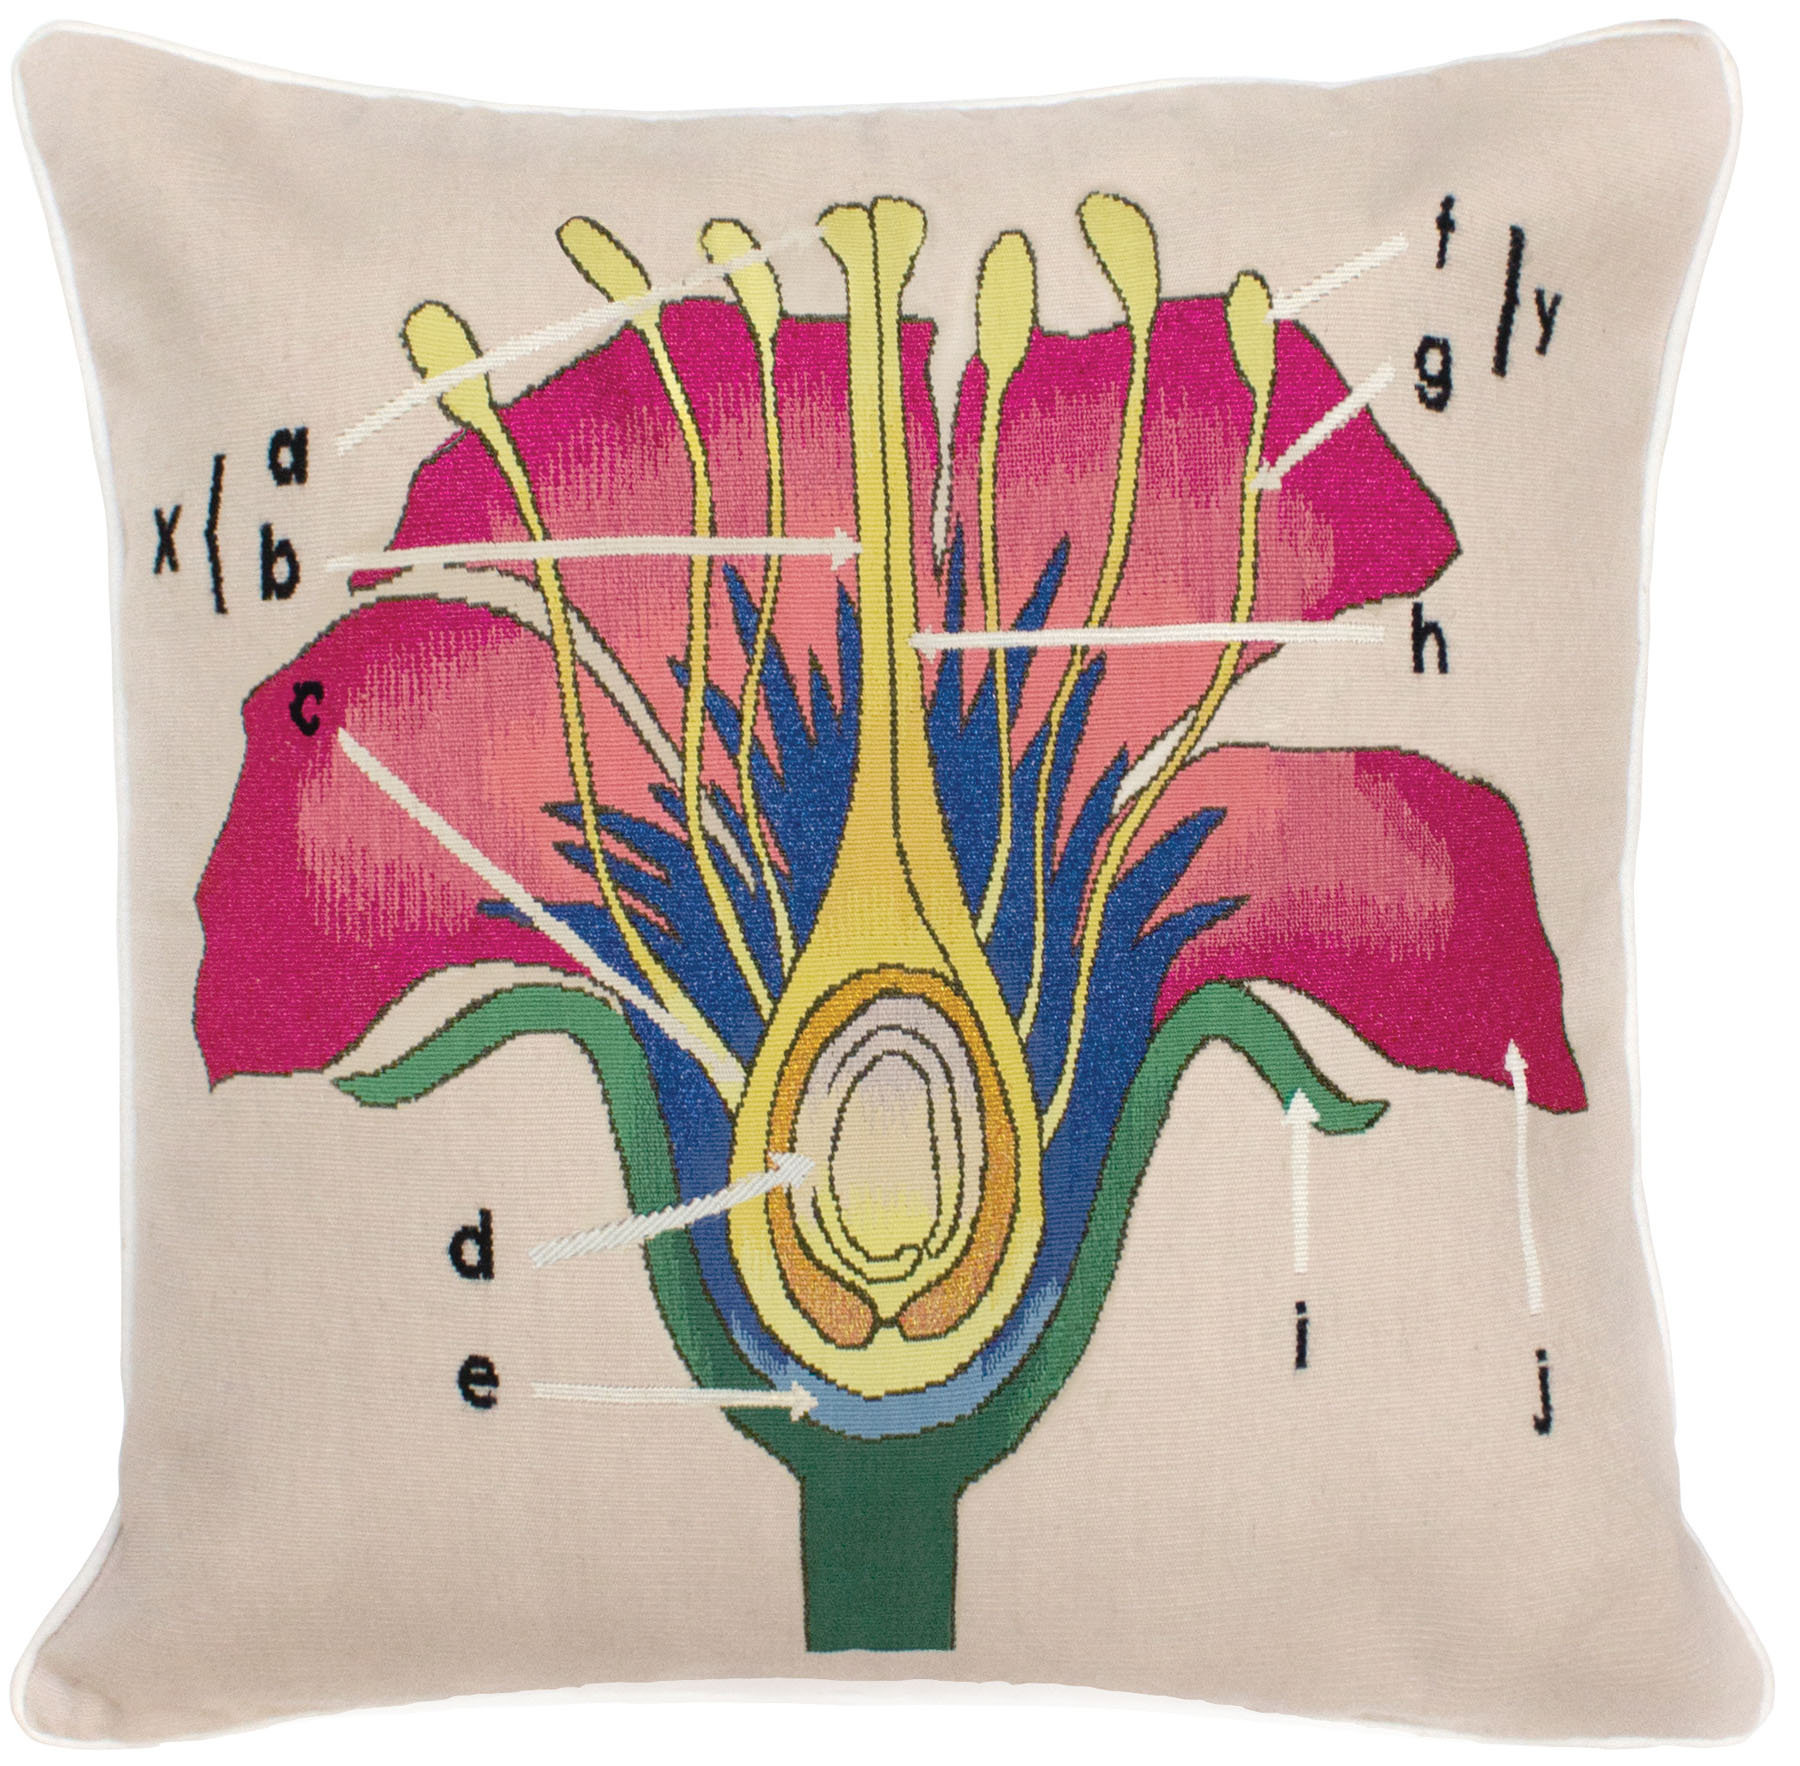 Christopher Kane Botanical Anatomy Cushion Floral Pink/Cream Wool Floral by The Rug Company